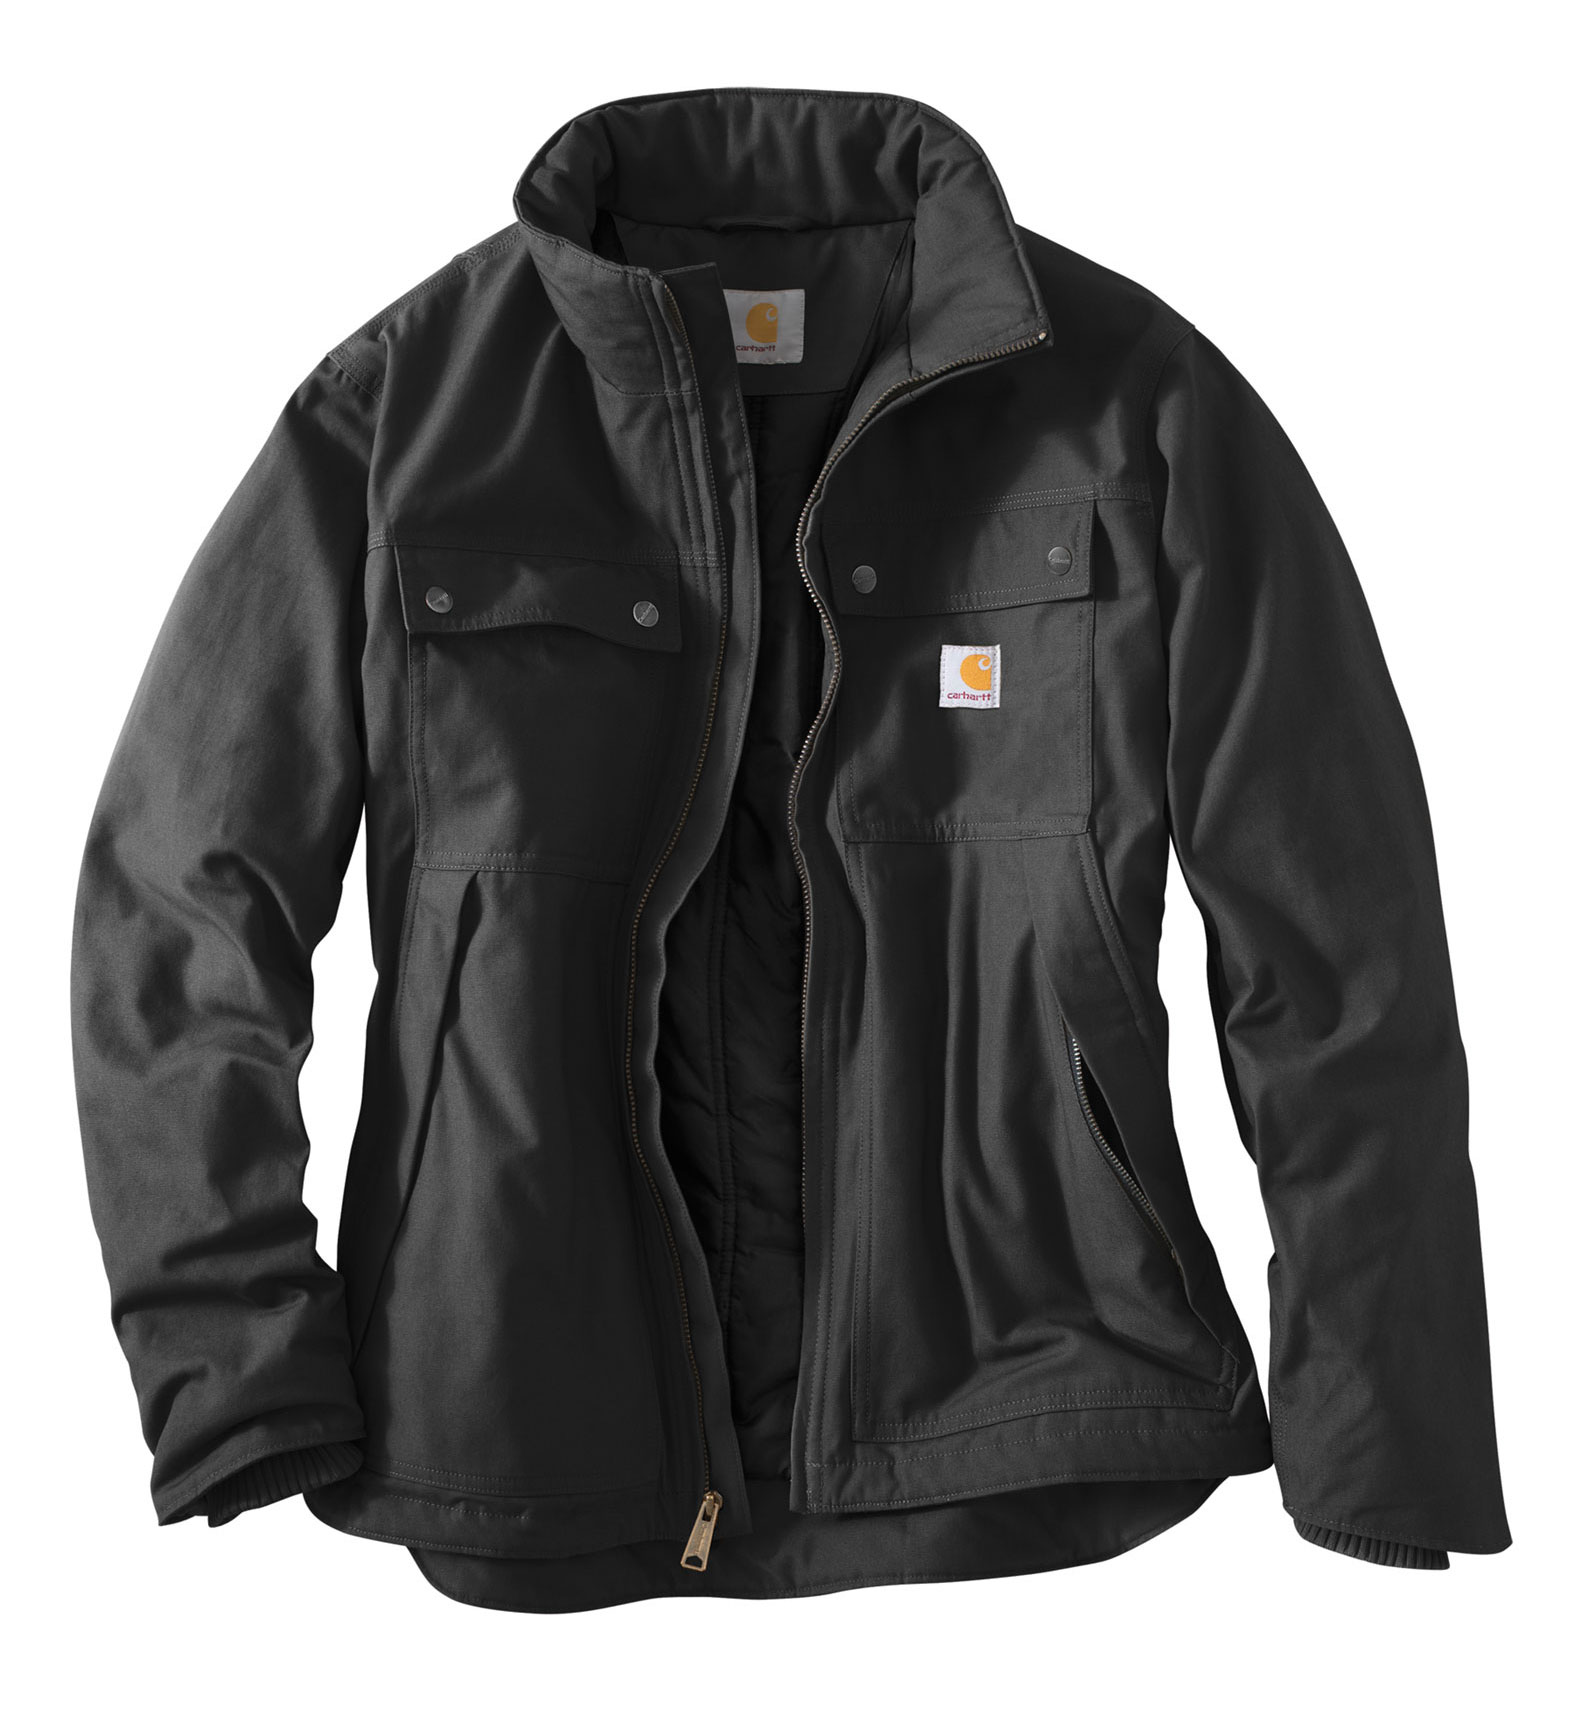 QuickDuck Jefferson� Traditional Jacket by Carhartt